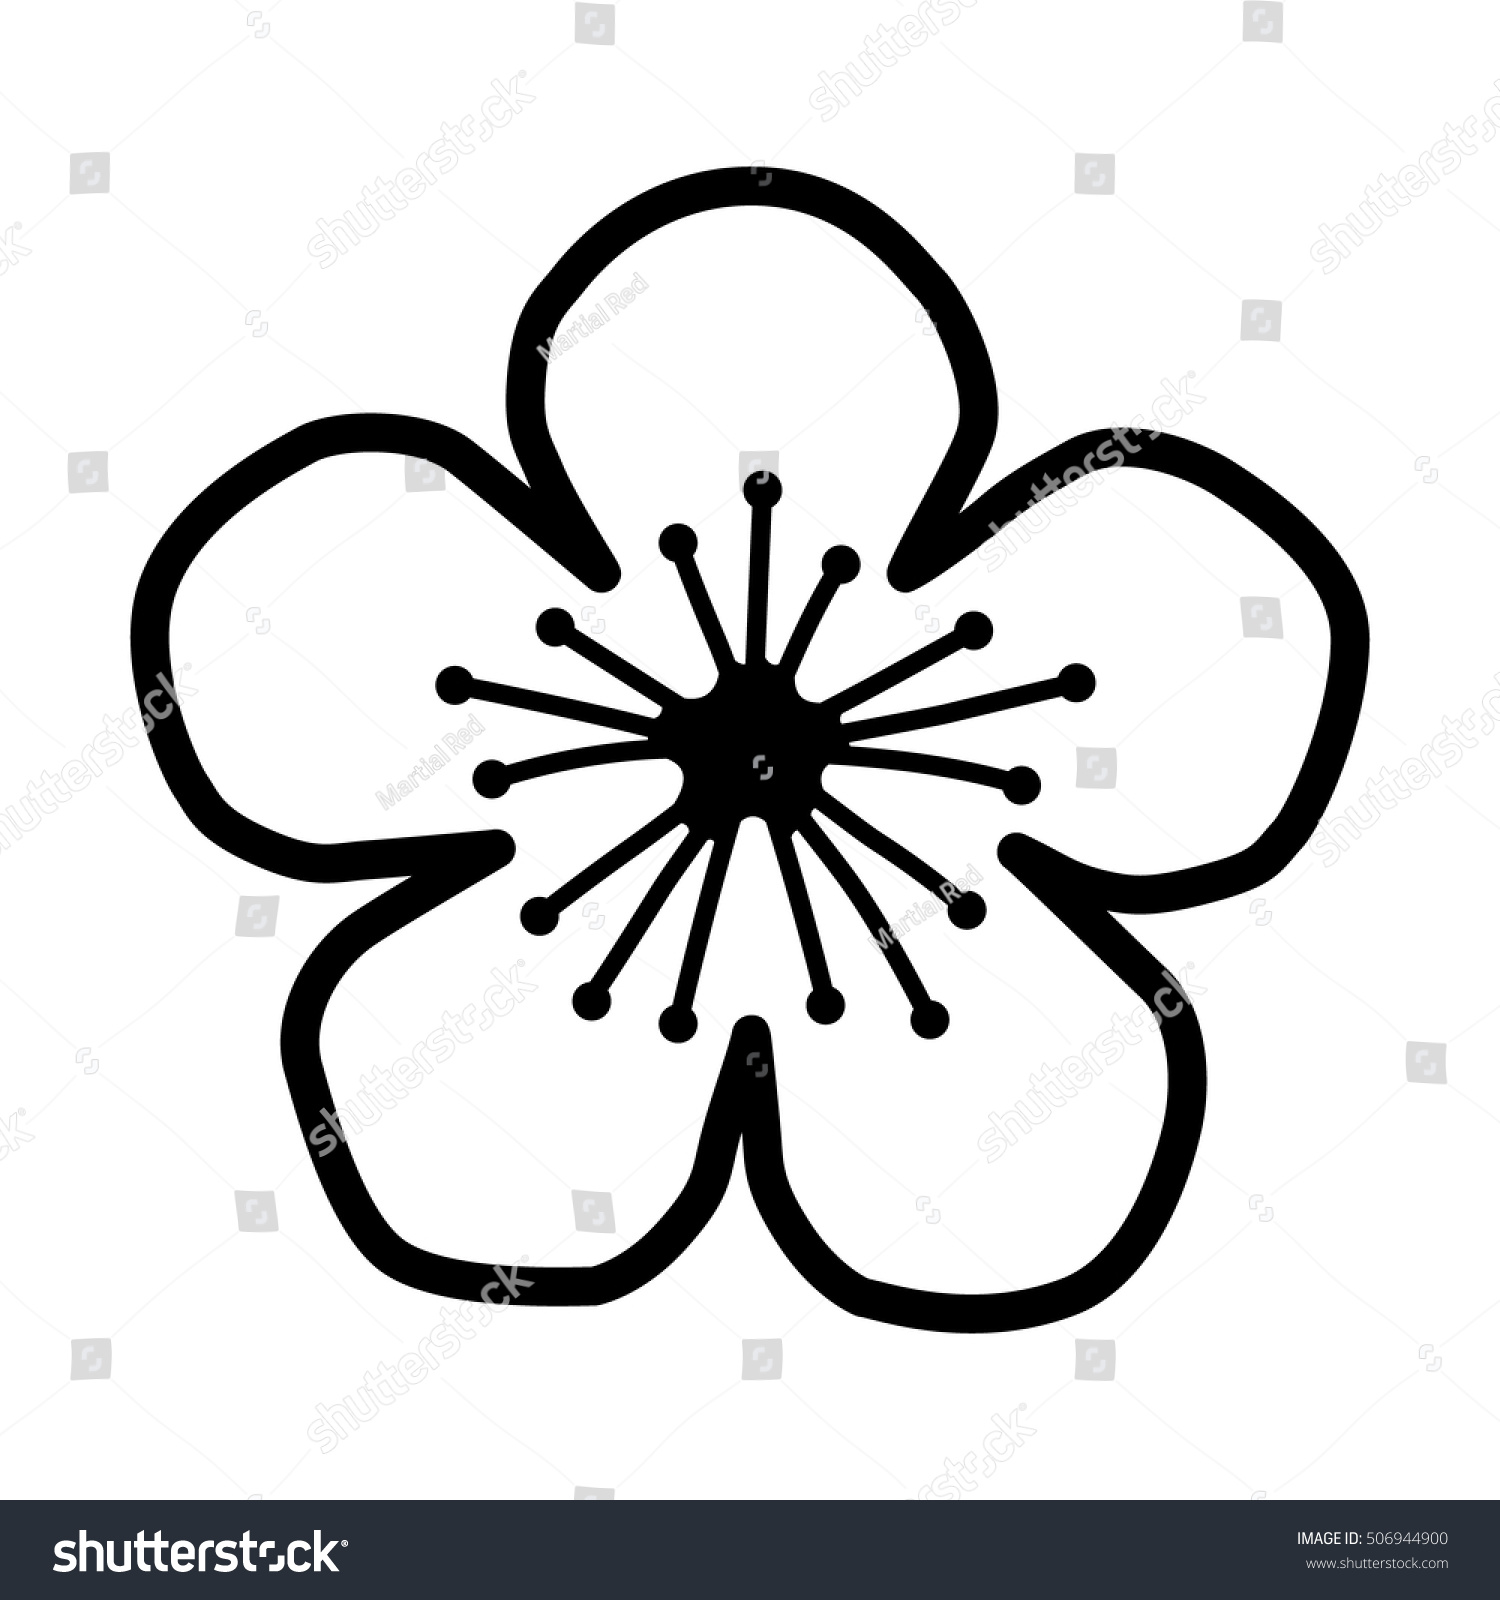 Line Drawing Website : Peach cherry blossom flower line art stock vector